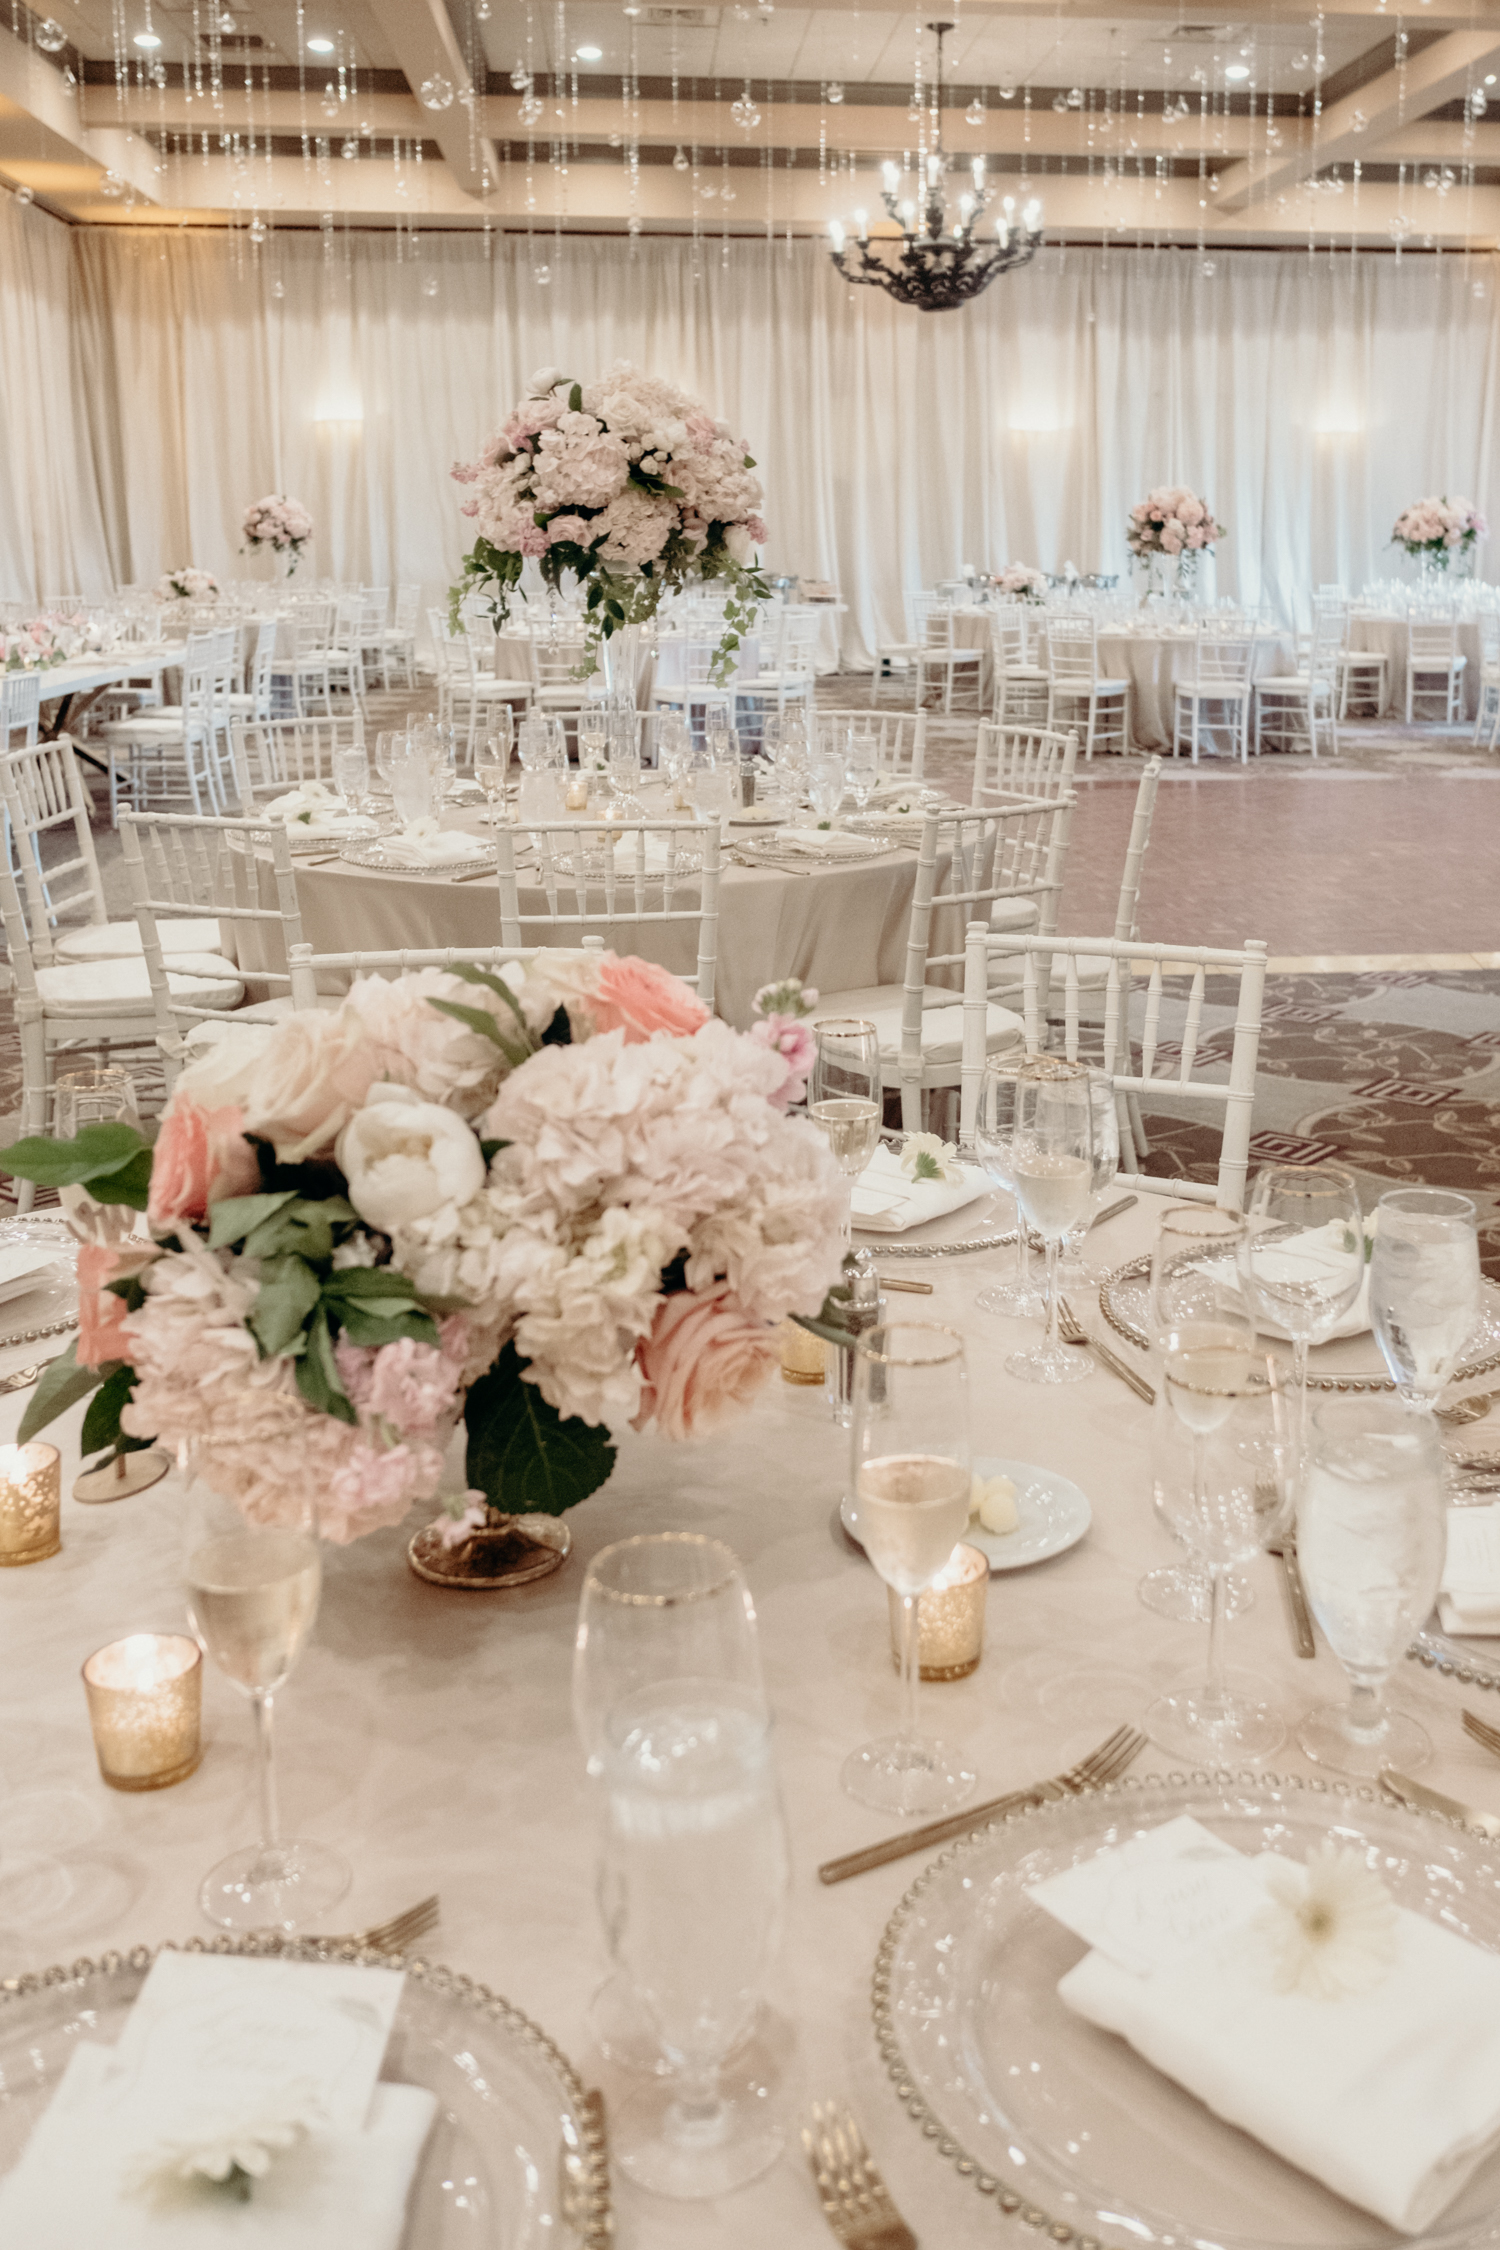 A ballroom at Lansdowne Resort is decorated in whites and creams and pinks with crystals dripping from the ceiling.